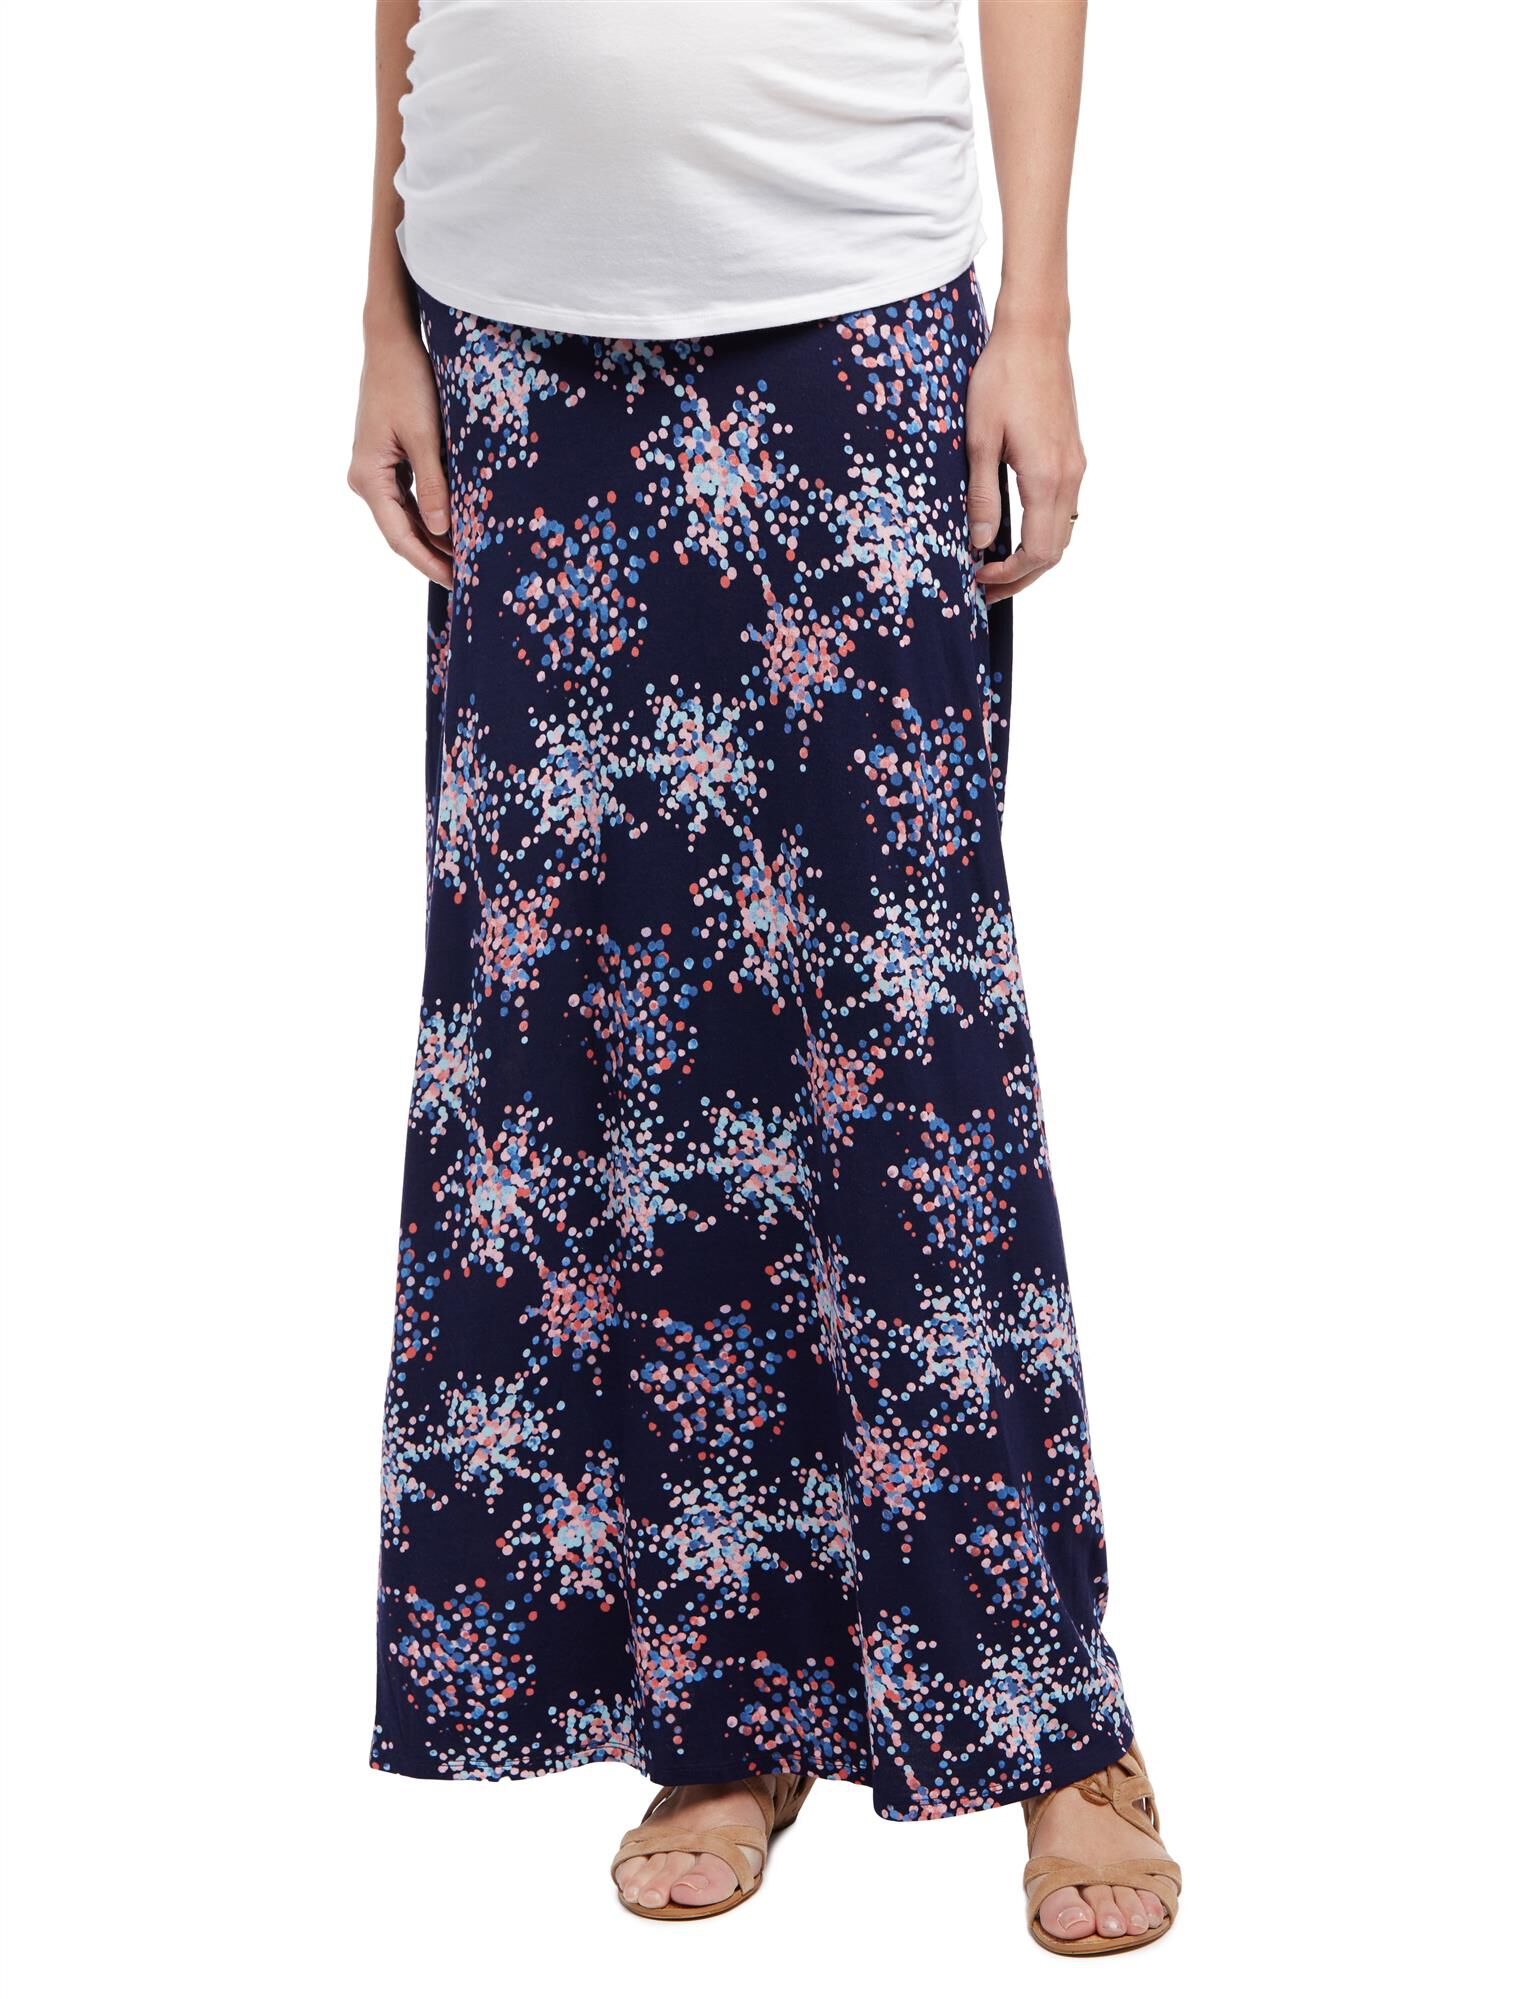 Fold Over Belly Printed Maternity Skirt- Confetti